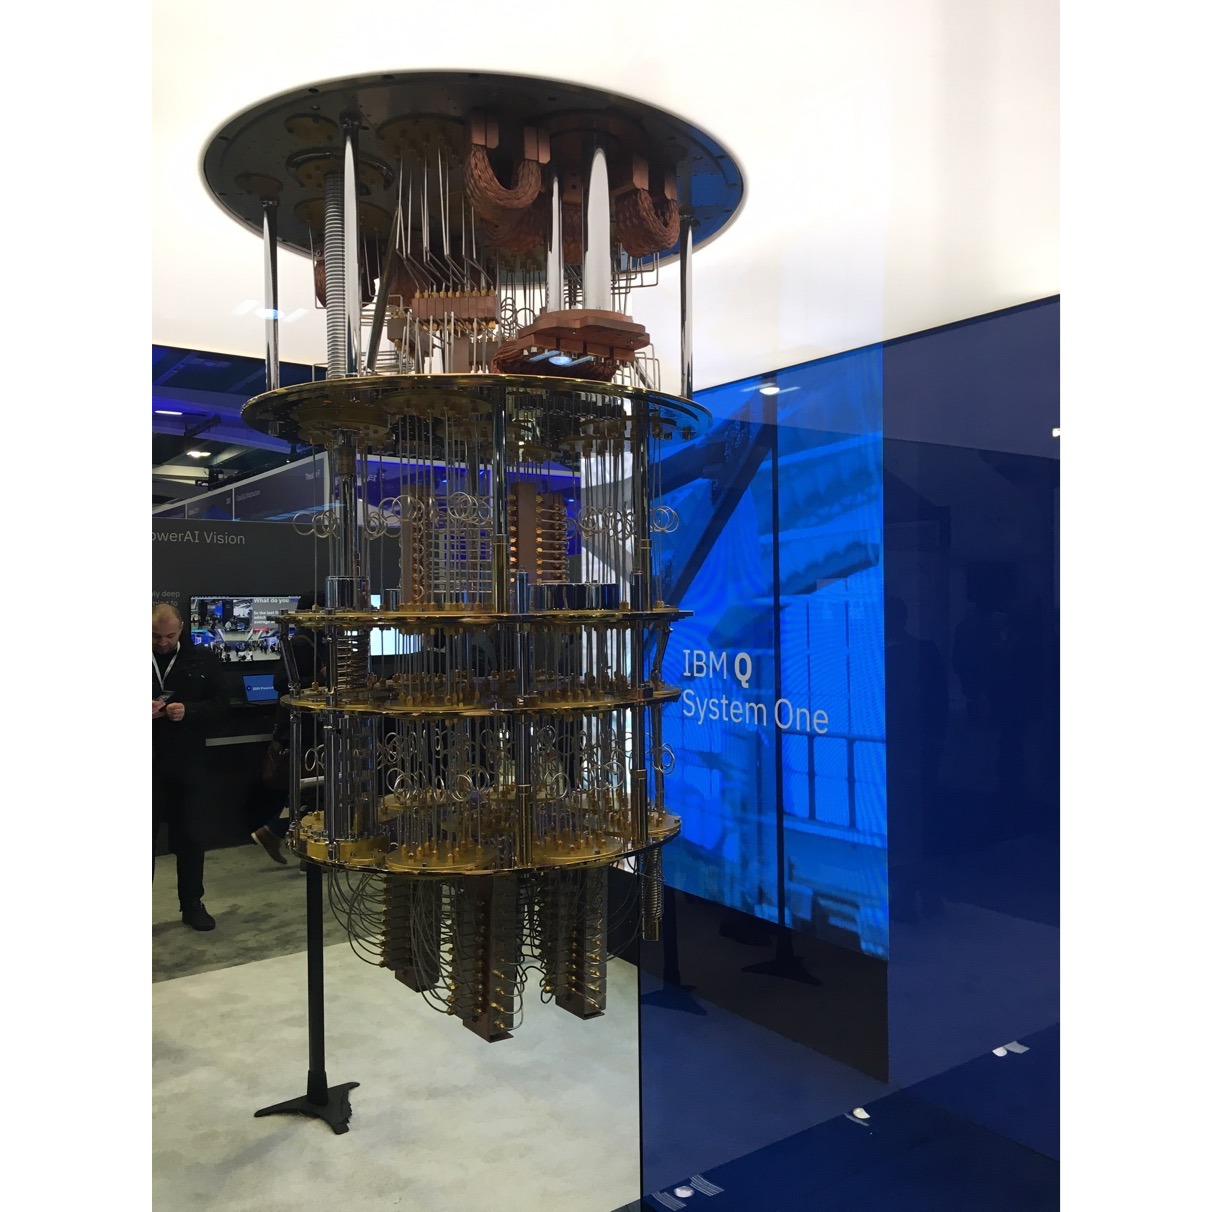 Today's largest publicly available computer from IBM: IBM's Q System One, a 20-qubit machine, was on display at IBM's THINK Conference in San Francisco this February. It is shown here without the cooling required to get it to a fraction of a degree above absolute zero.